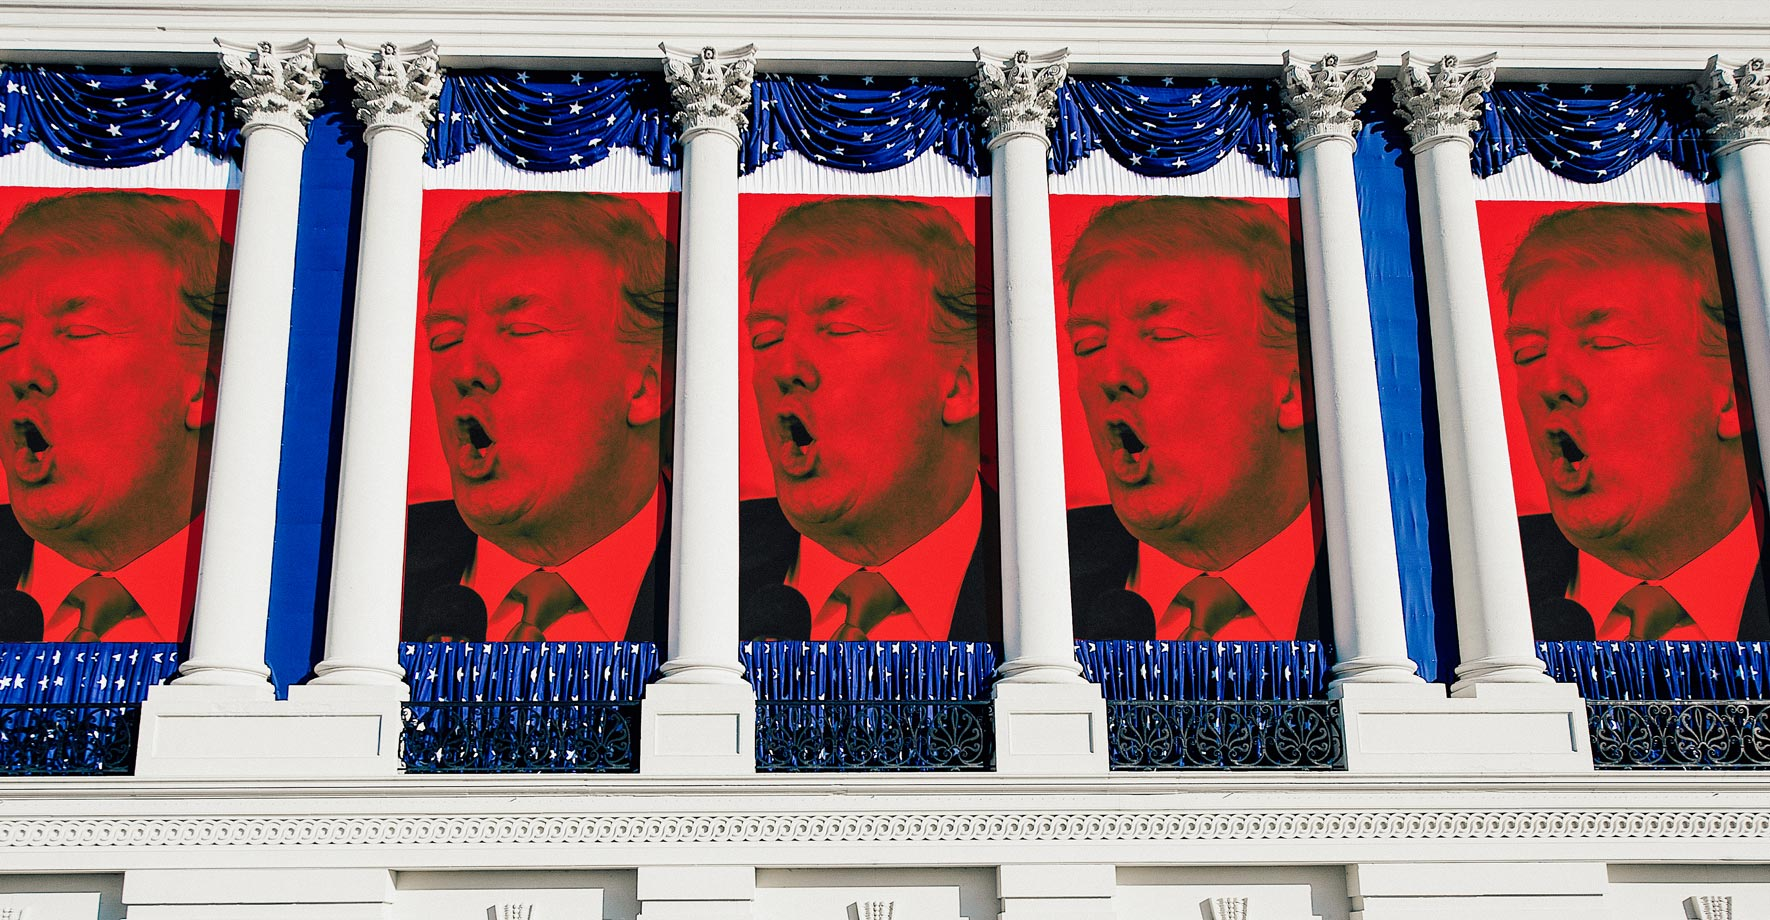 Photo illustration of banners with Trump's face hanging from the columns of the US Capitol building.